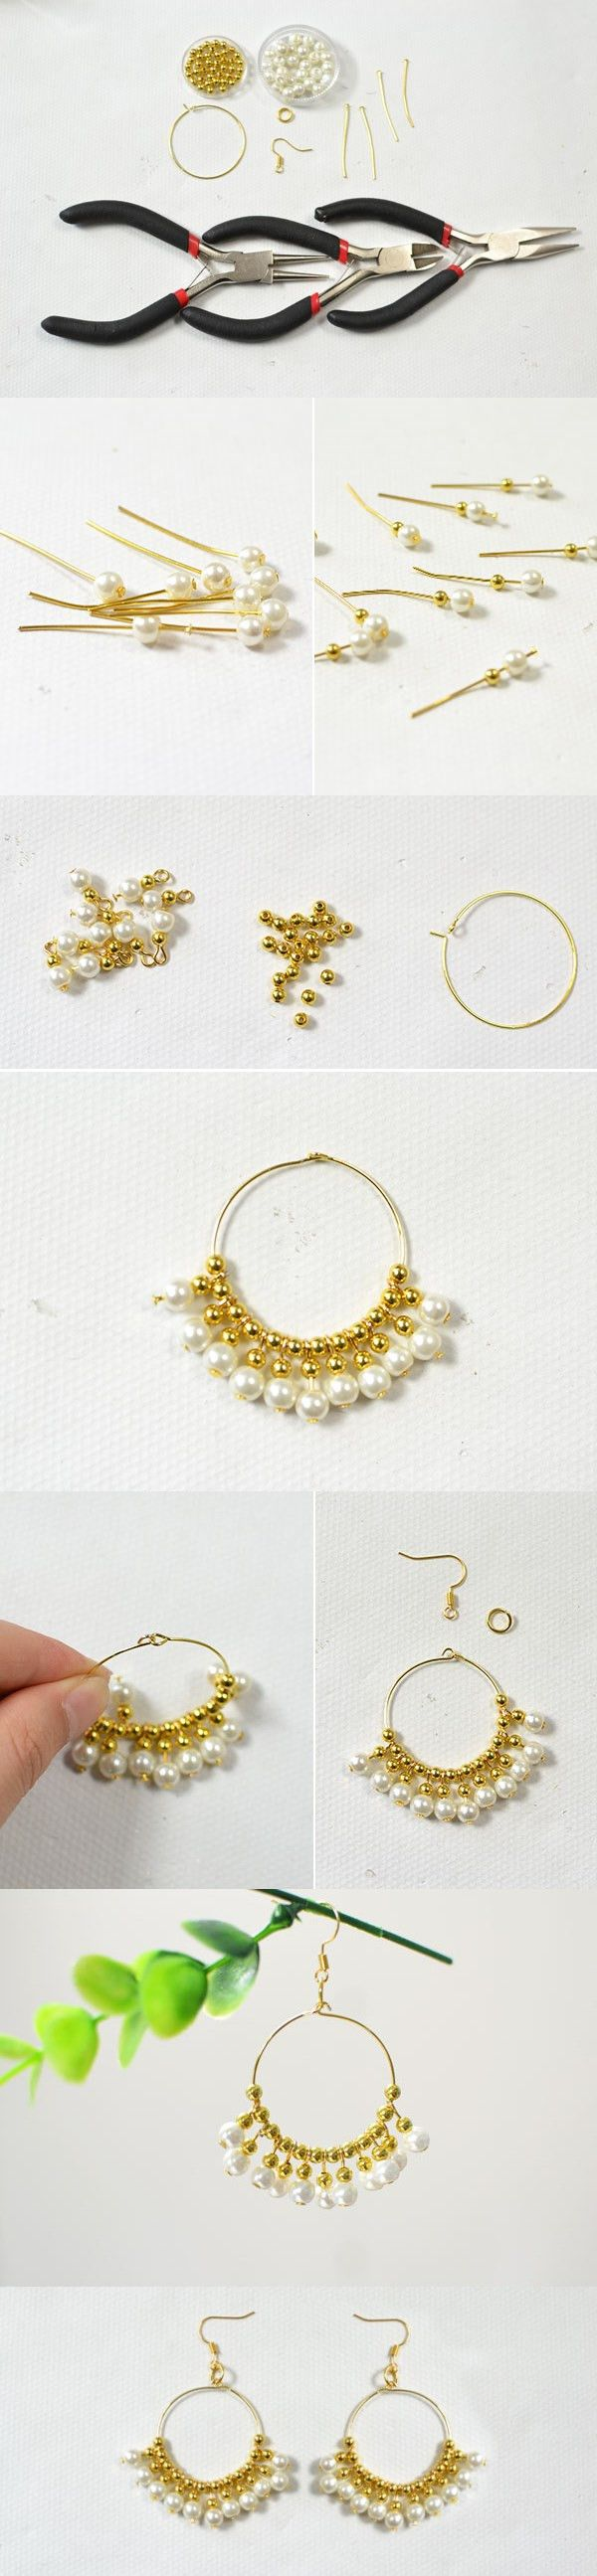 Tutorial for gold beaded hoop earrings from LC.Pandahall.com | Your ...